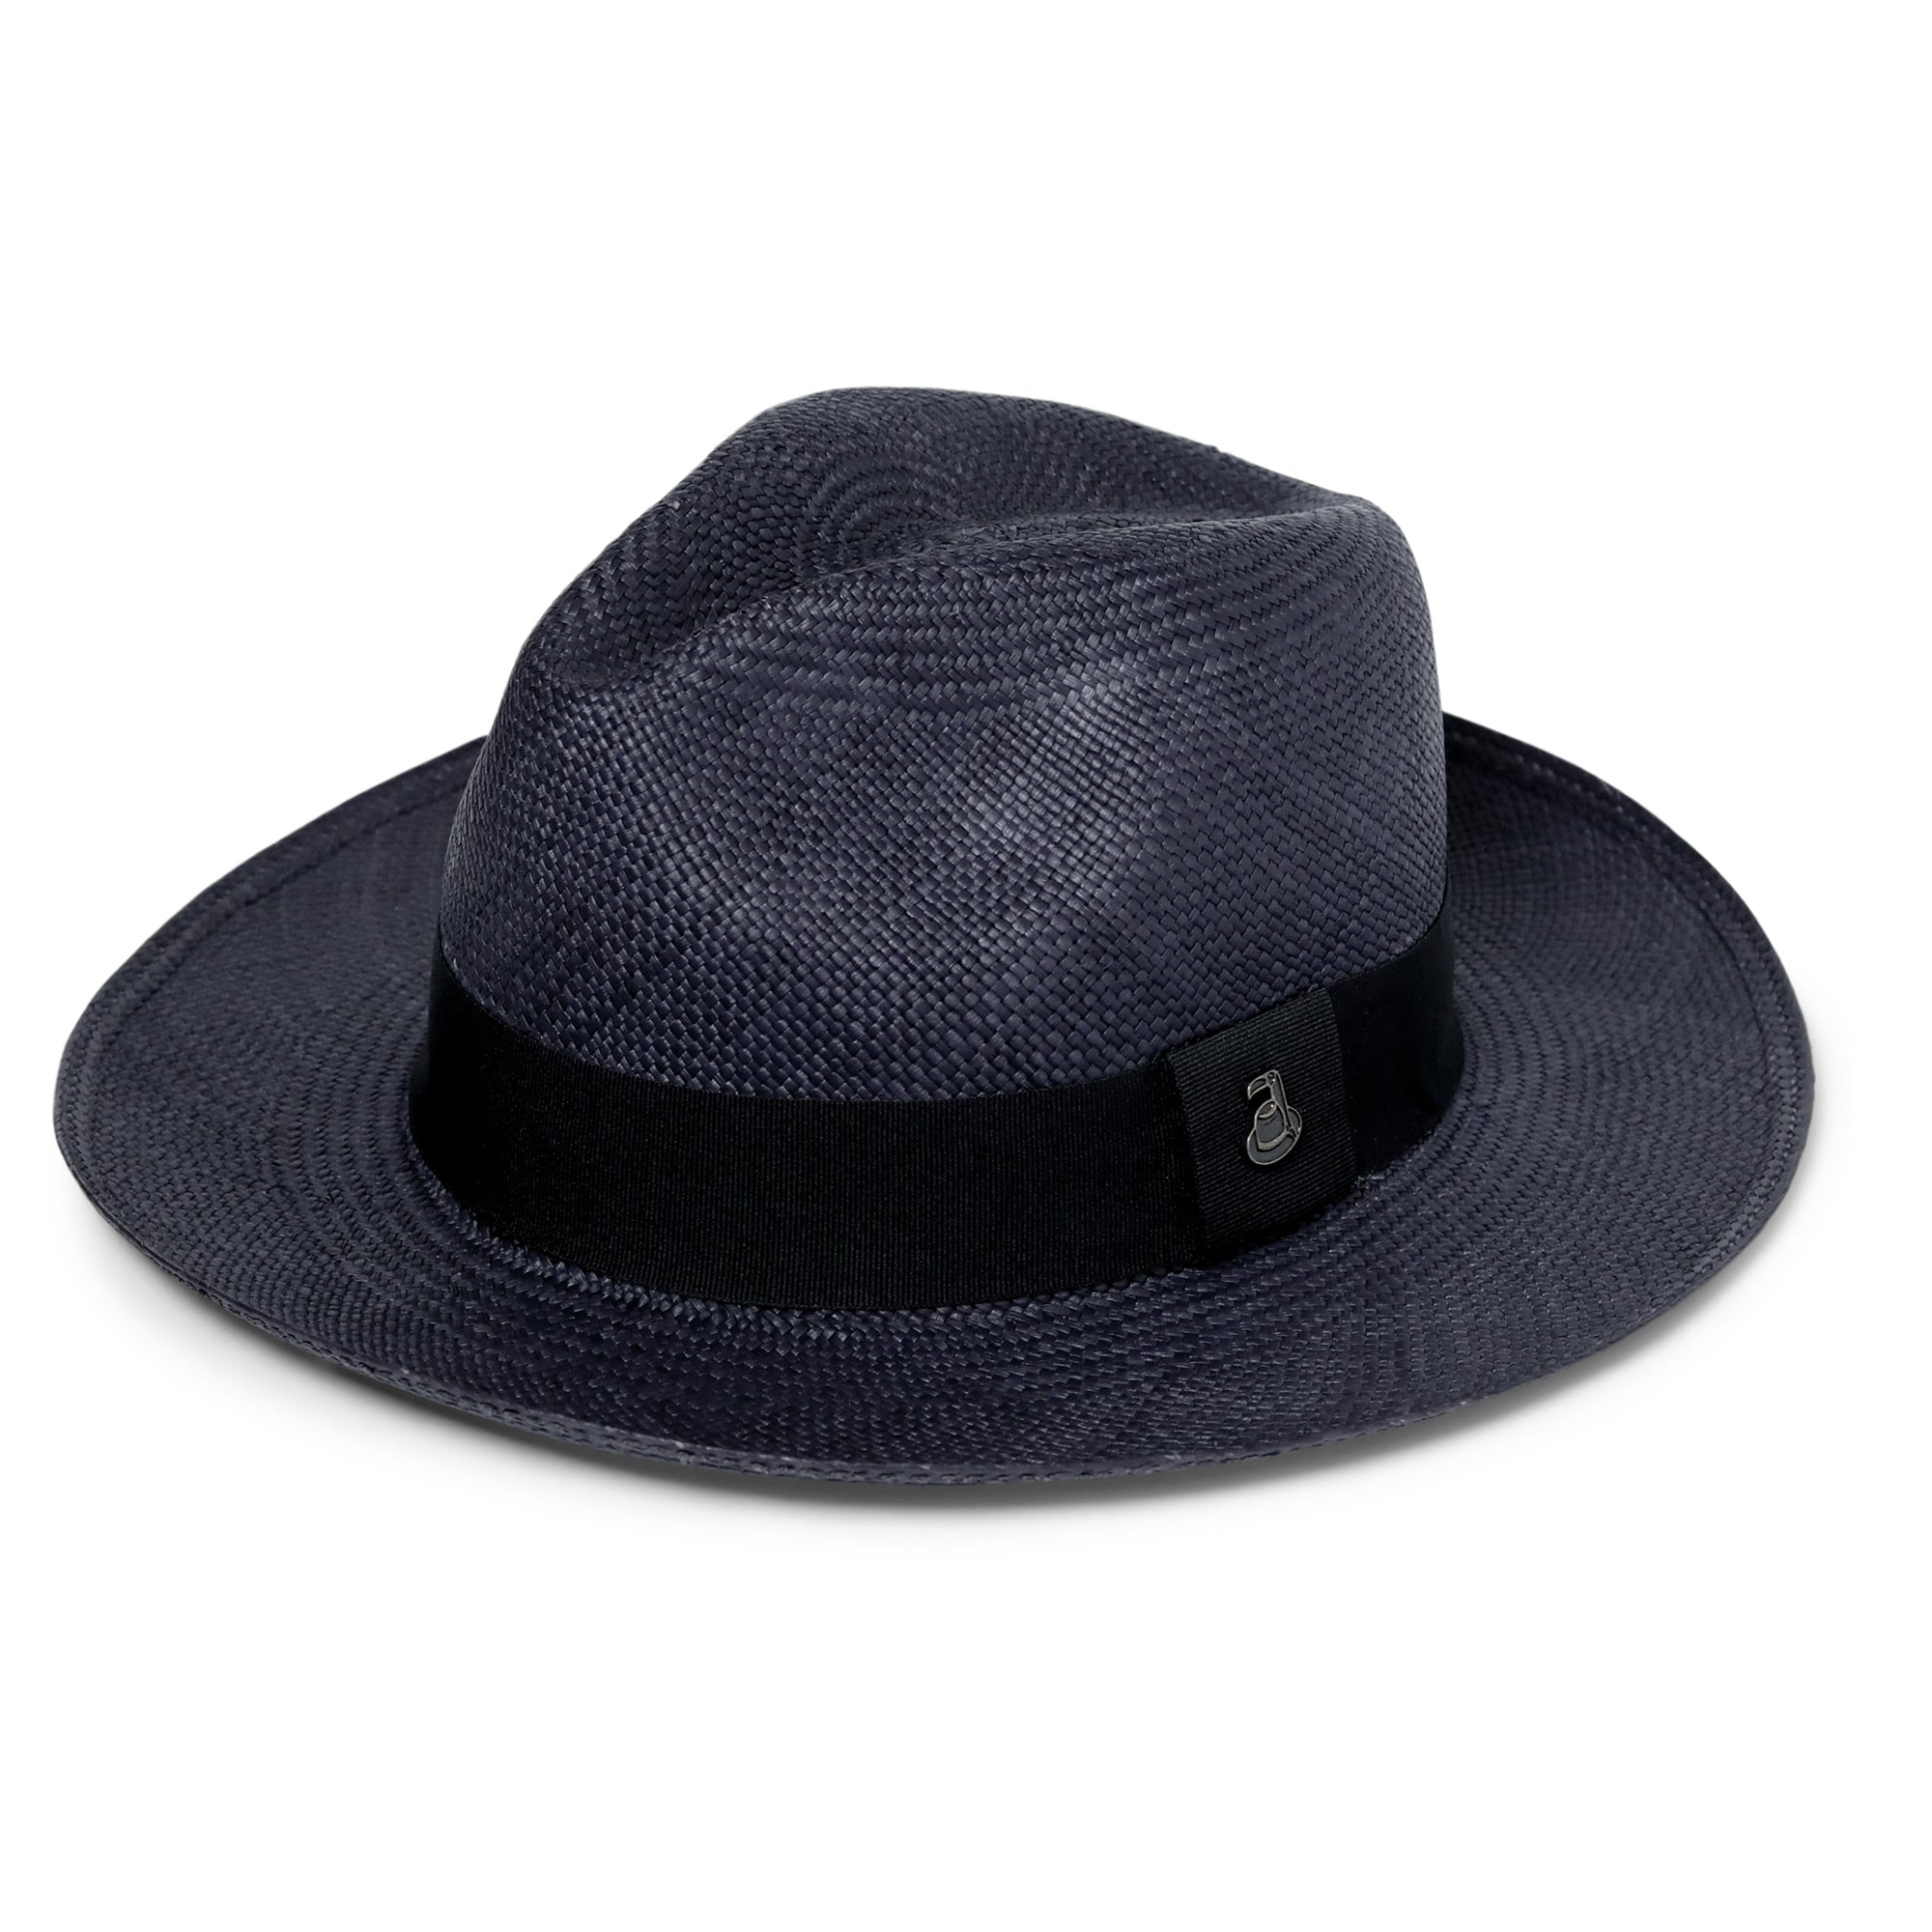 181f95ddd01 The Classic Navy Blue Panama Hat – Ecua Andino Hats